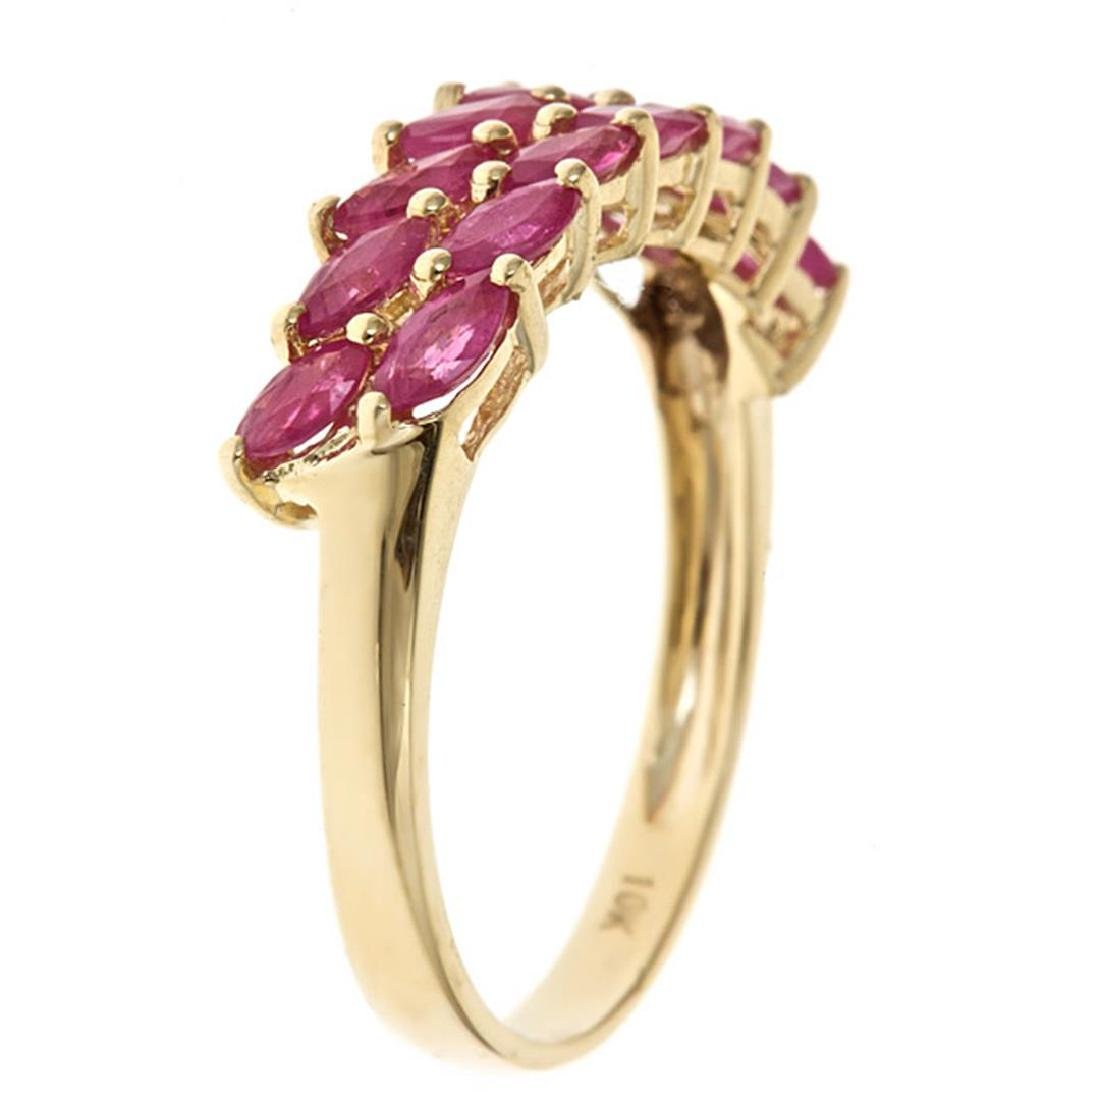 1.37 ctw Ruby Ring - 10KT Yellow Gold - 2